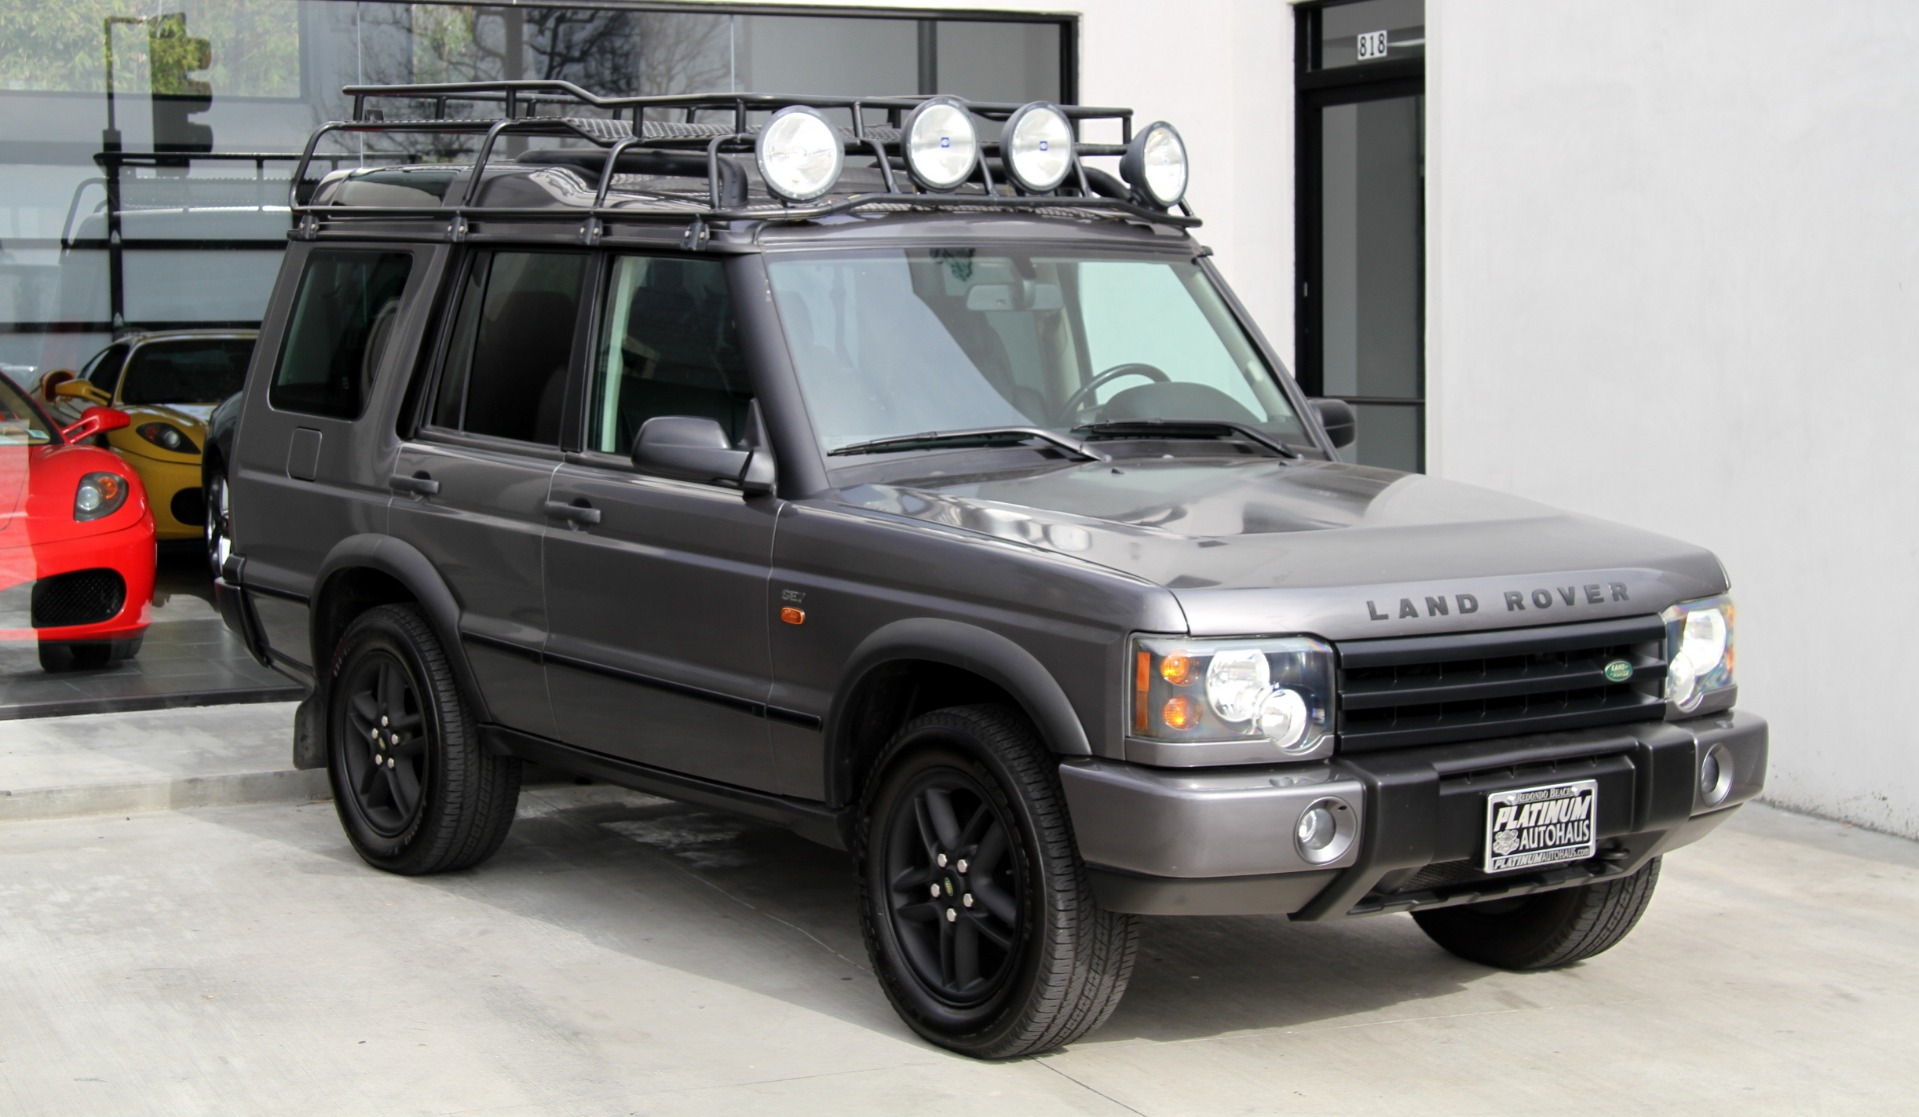 2004 land rover discovery ii se7 stock 856998 for sale near redondo beach ca ca land rover - Land rover garage near me ...